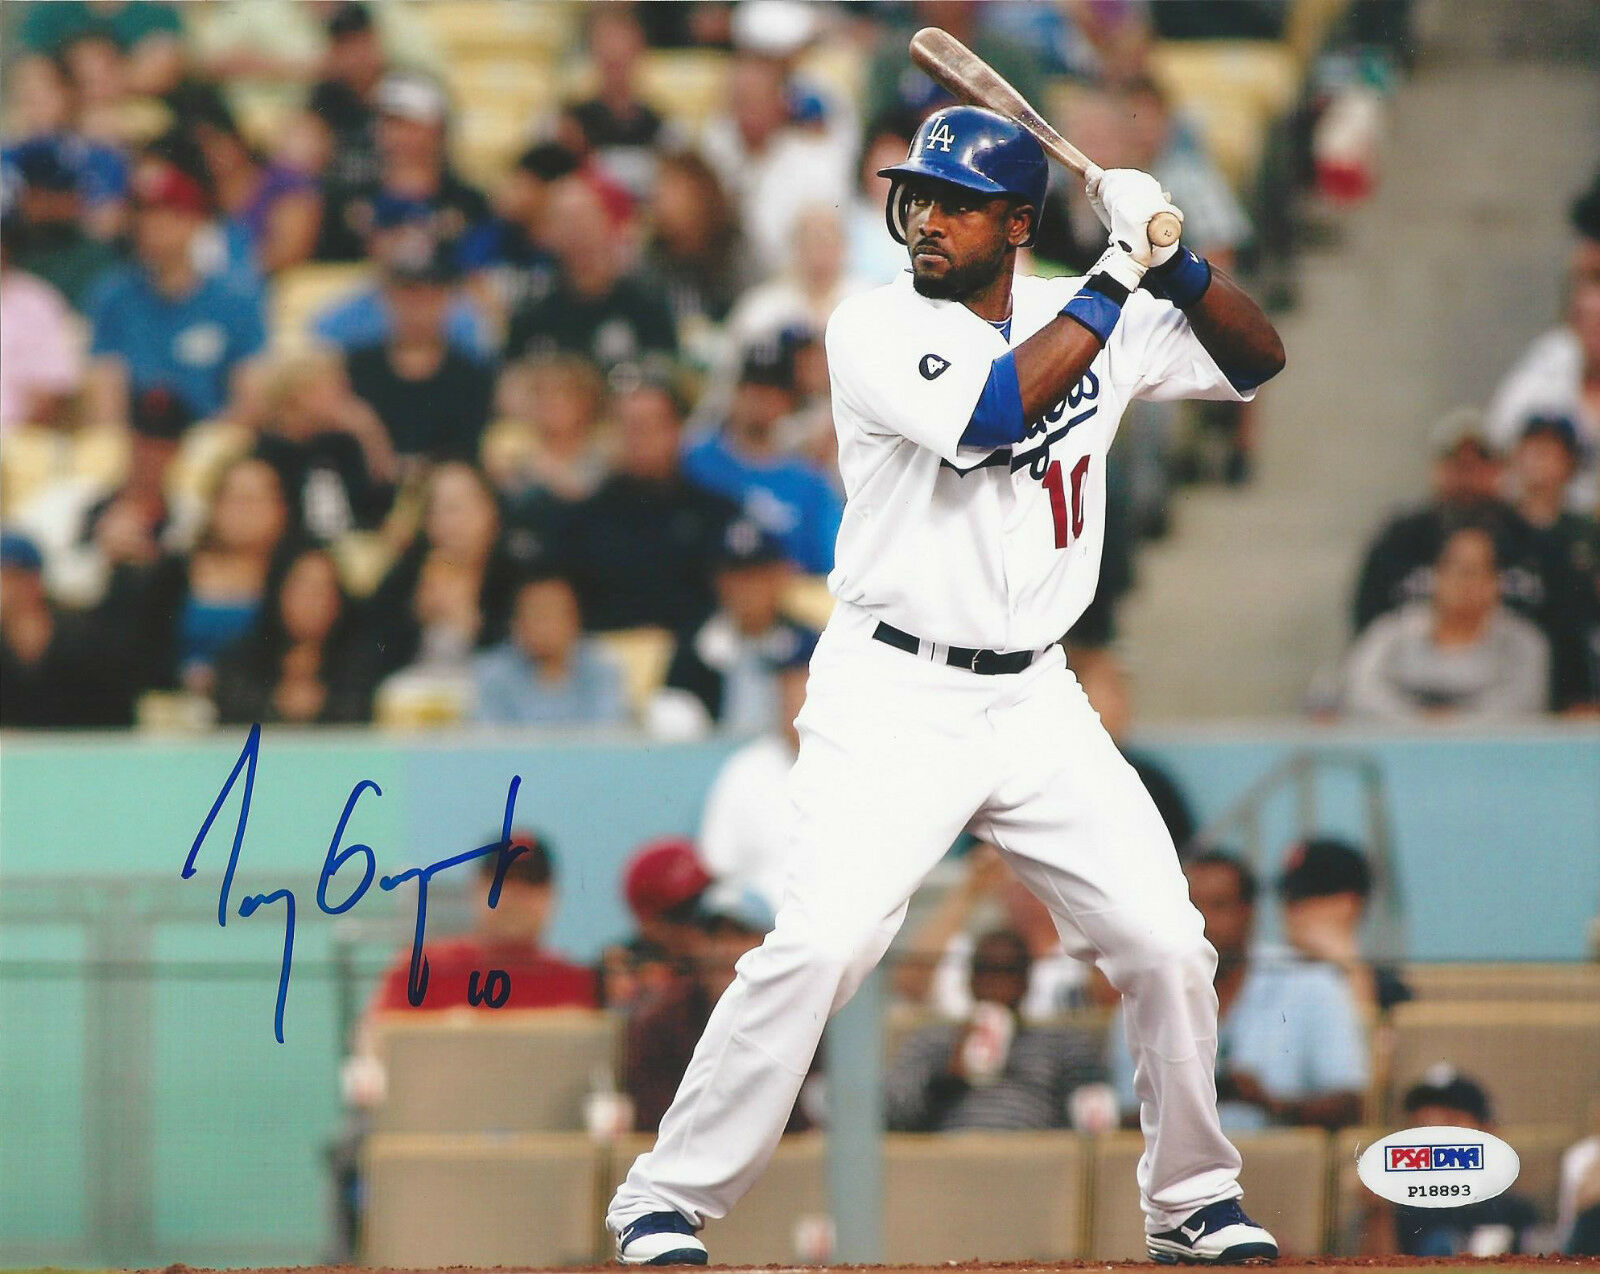 Tony Gwynn Jr. Los Angeles Dodgers Signed 8x10 Photo - PSA/DNA # P18893